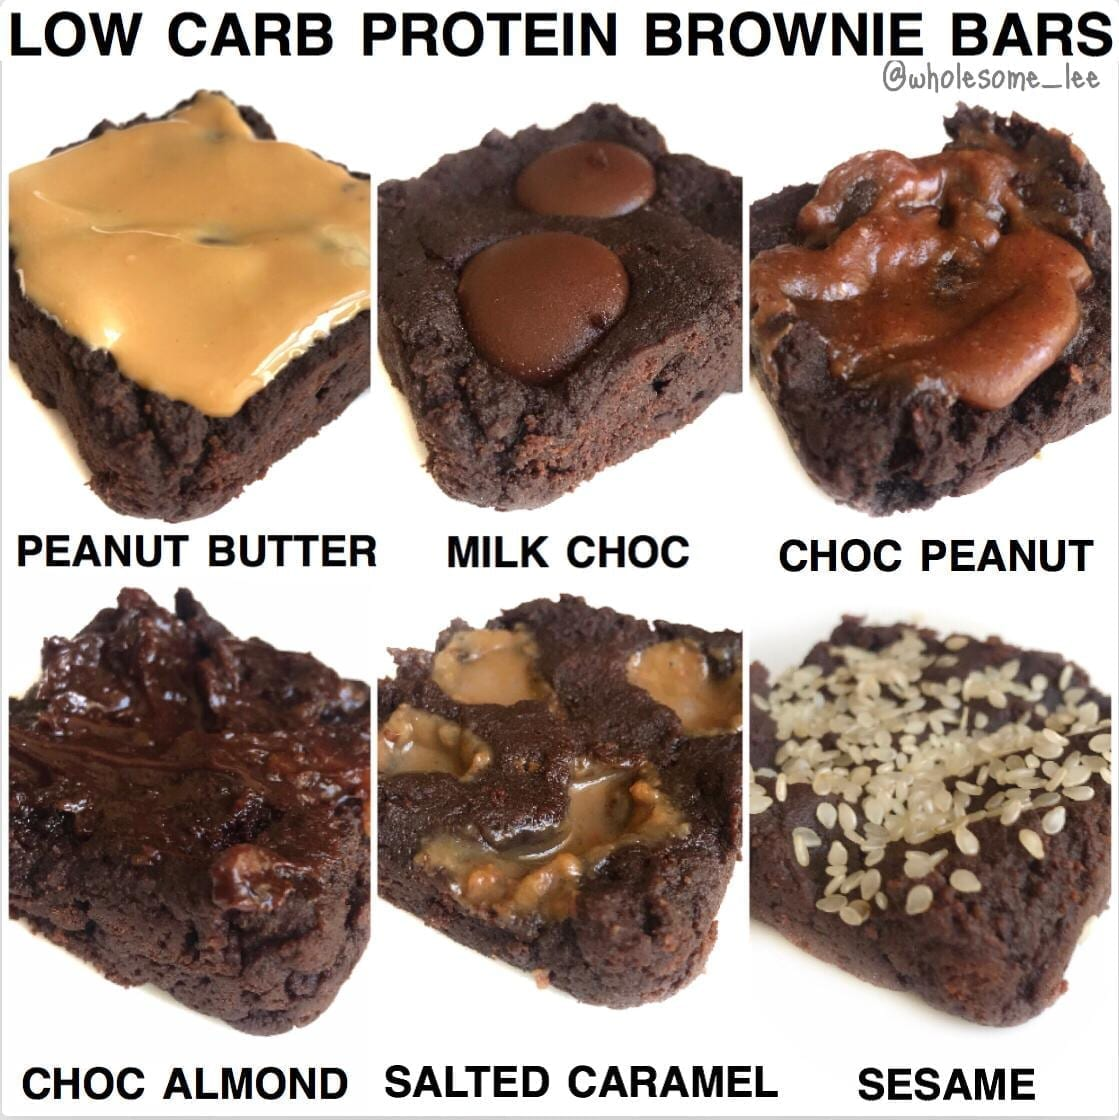 Low Carb High Protein Brownie Bars